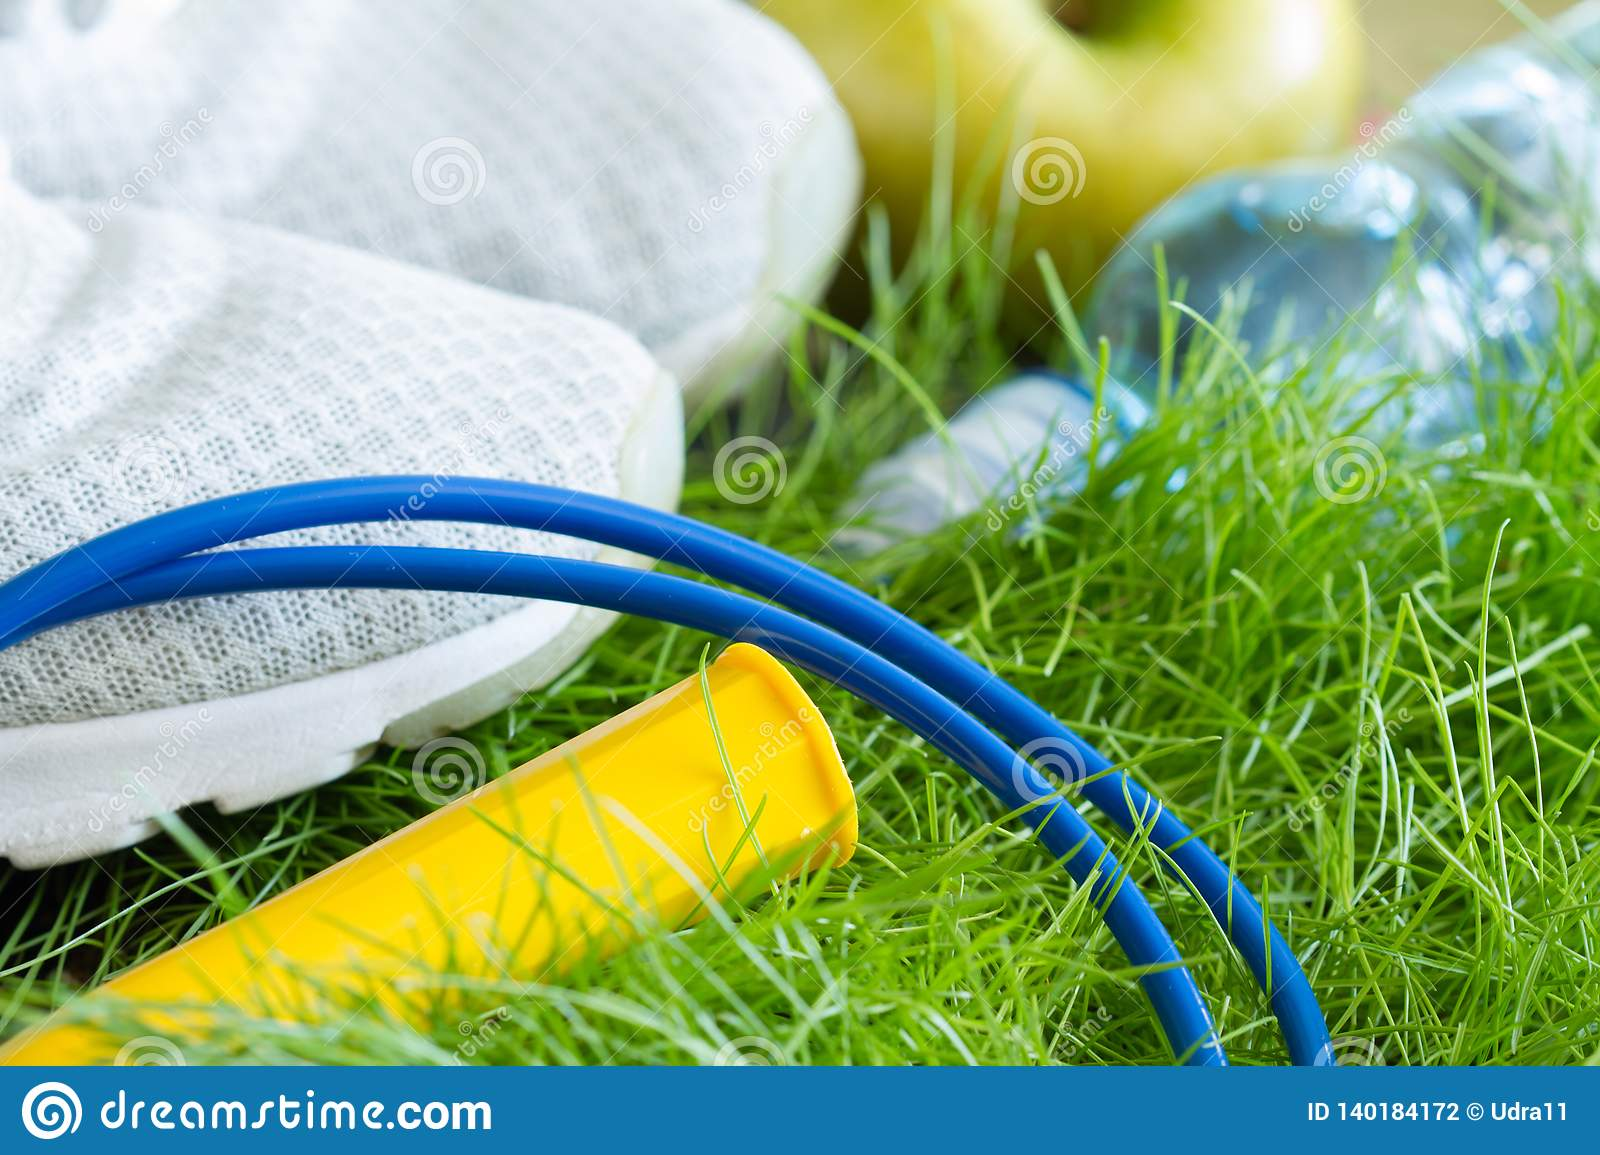 Jogging and sport active livestyle concept with sneakers and healthy food outdoor on grass